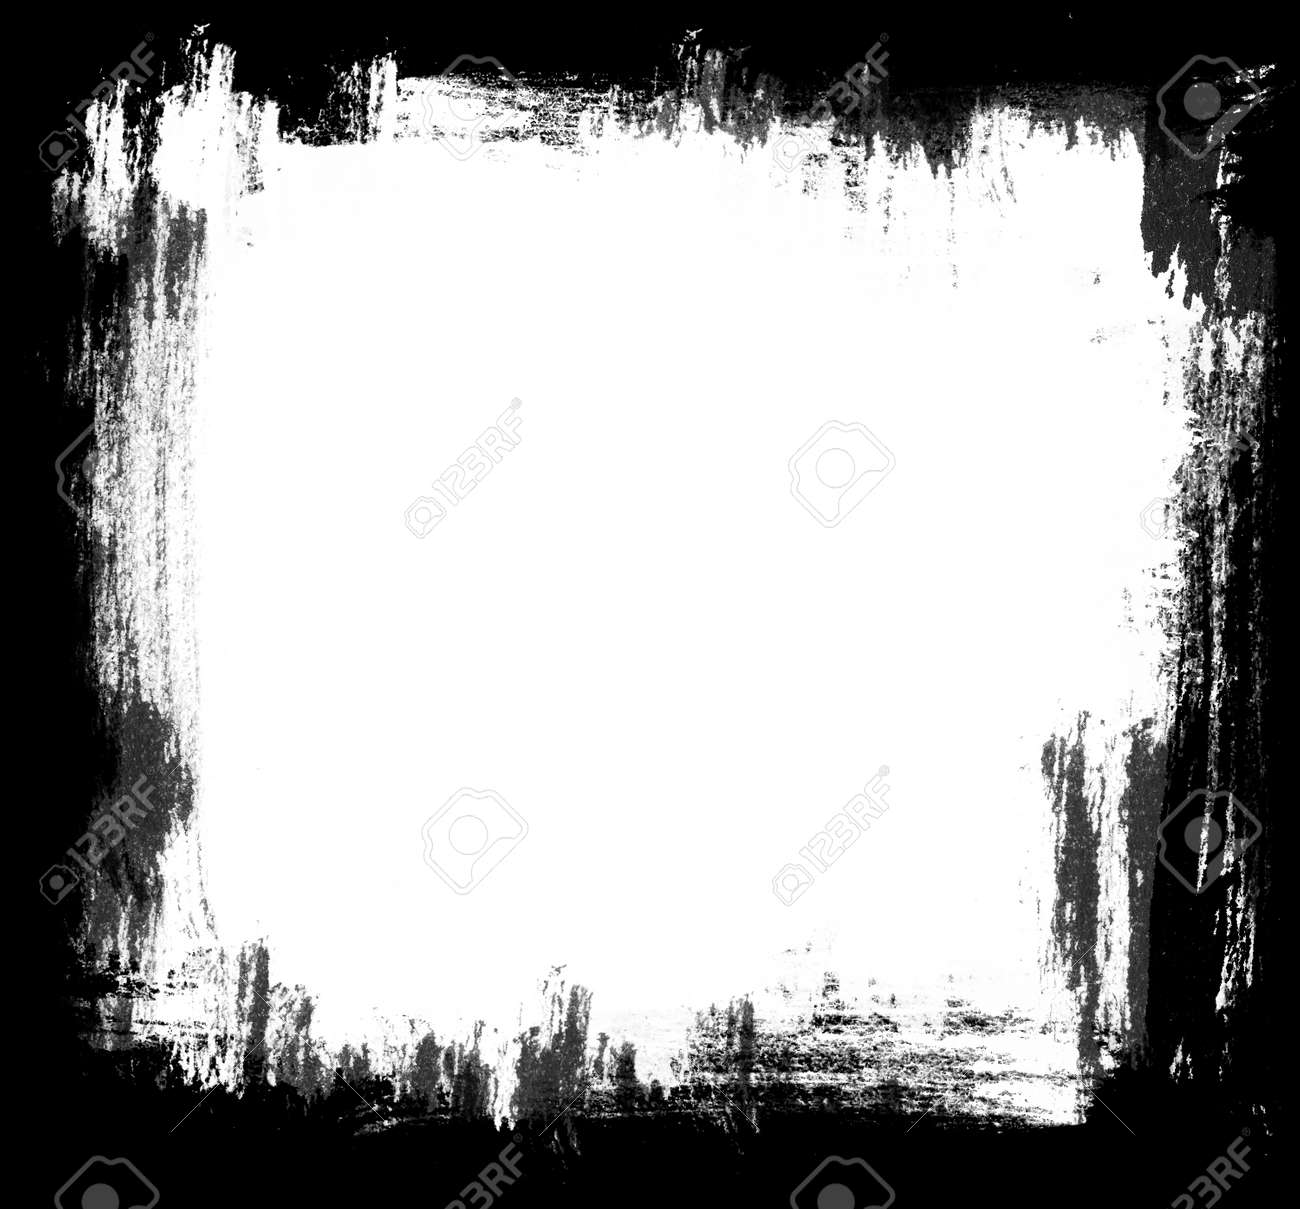 Highly detailed grunge frame  with space for your text or image. Great grunge layer for your projects. Stock Photo - 18398208